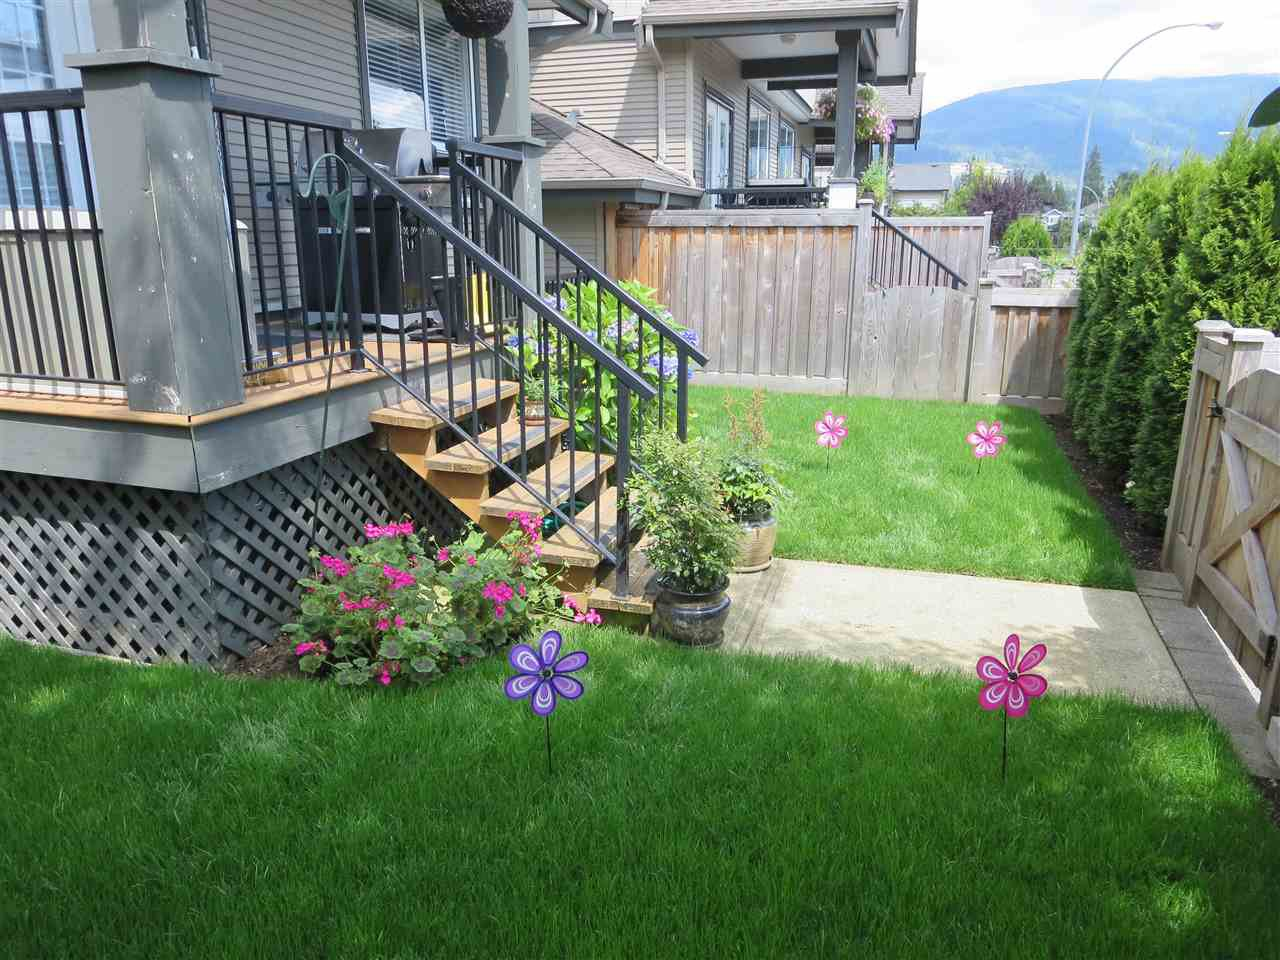 Photo 15: Photos: 63 3127 SKEENA Street in Port Coquitlam: Riverwood Townhouse for sale : MLS®# R2090693